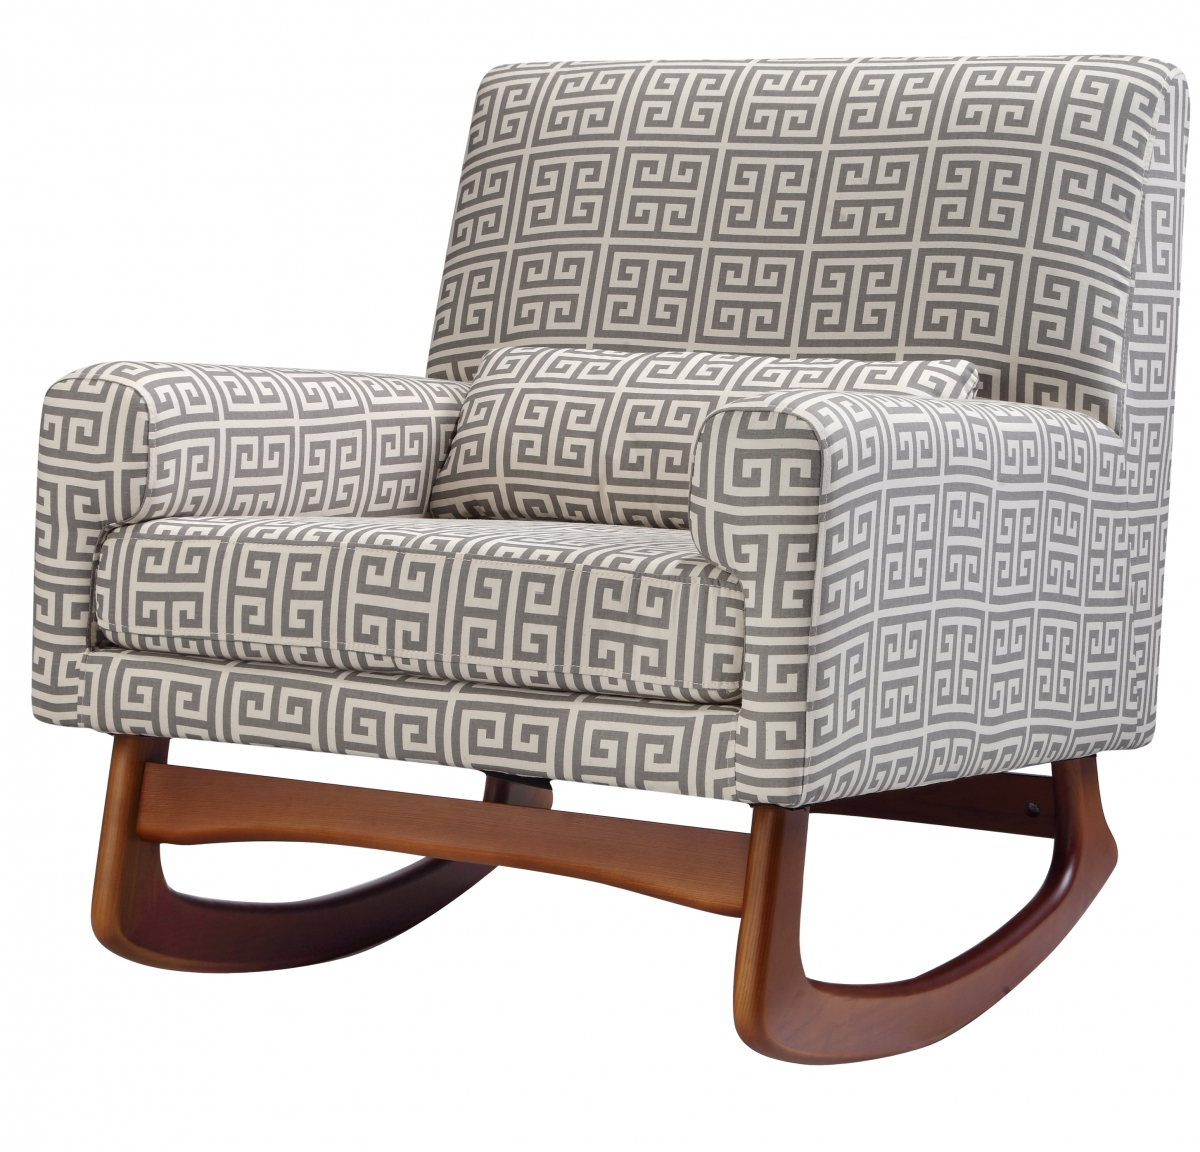 Enjoyable fabric upholstered glider rocker with armchairs and wooden laminate floor for living room